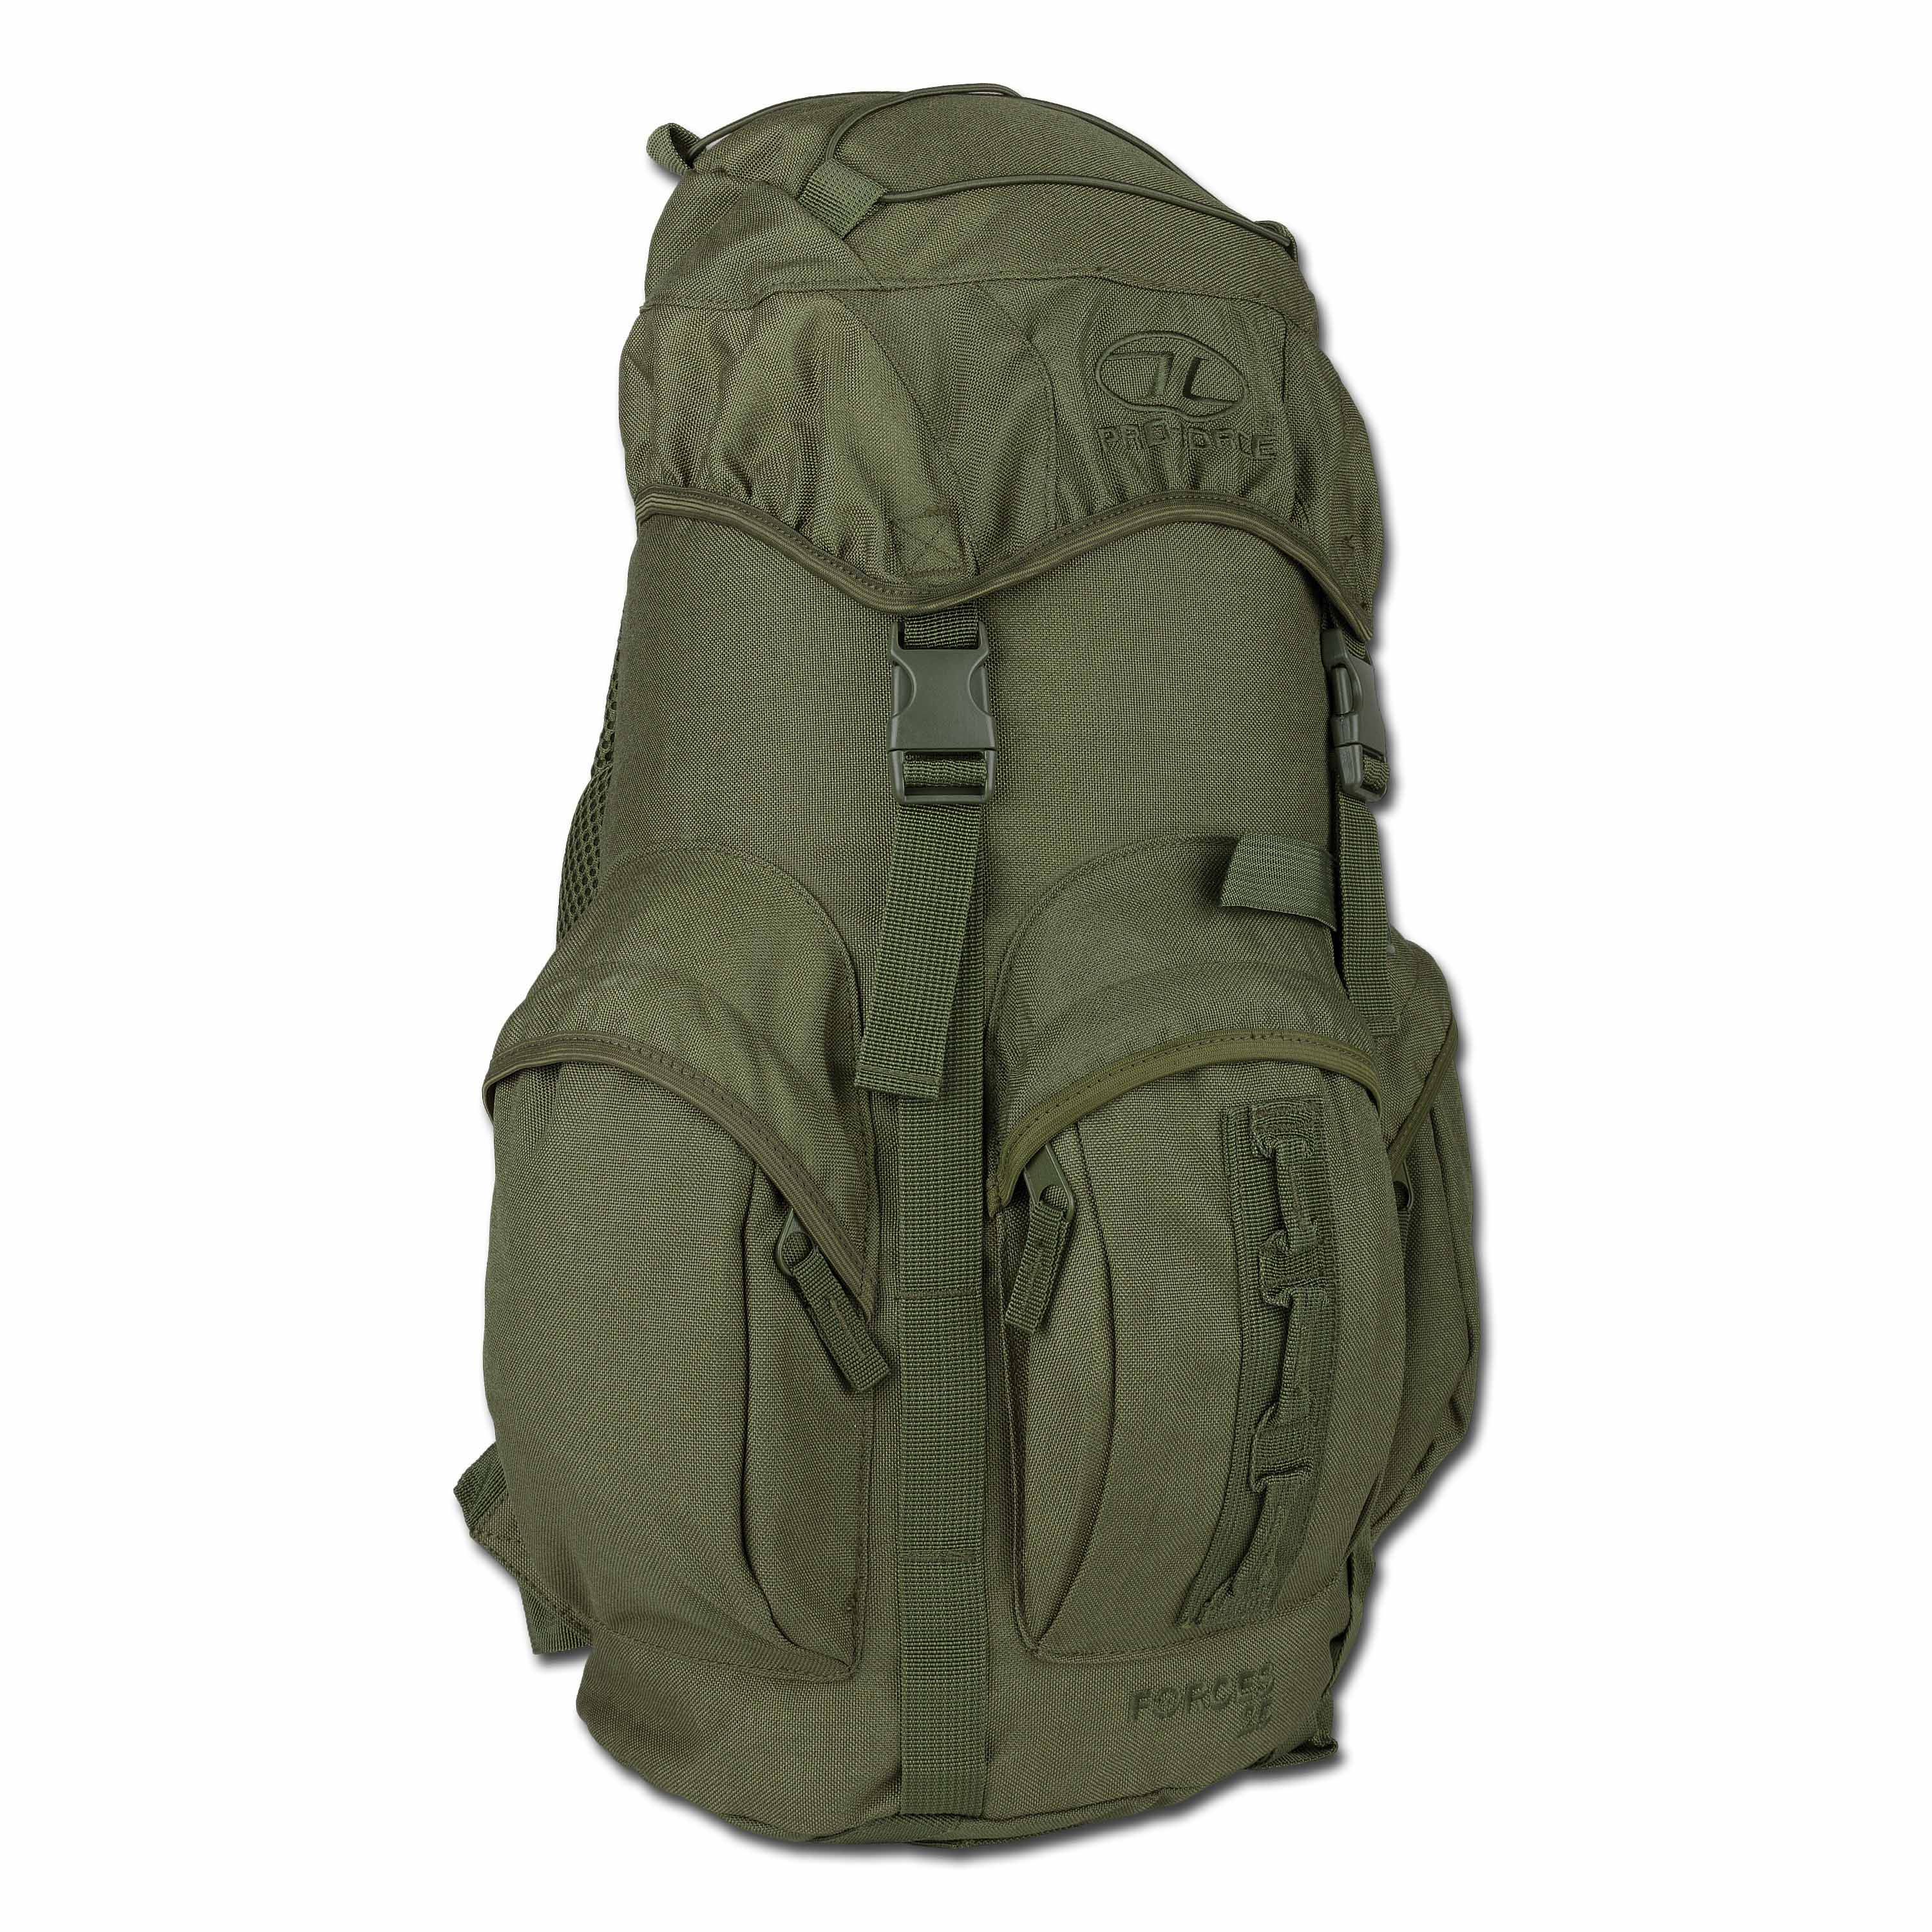 Sac à dos New Forces Pro Force 25 litres vert olive